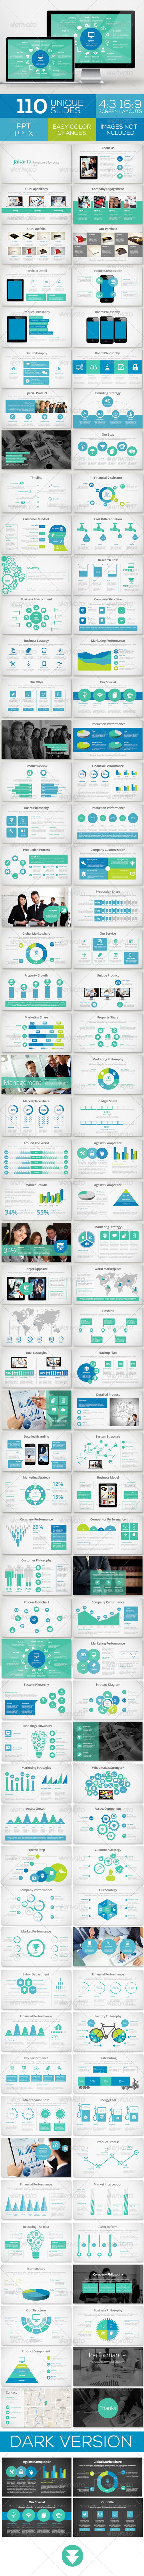 Jakarta Powerpoint Template Volume 3 - Business Powerpoint Templates